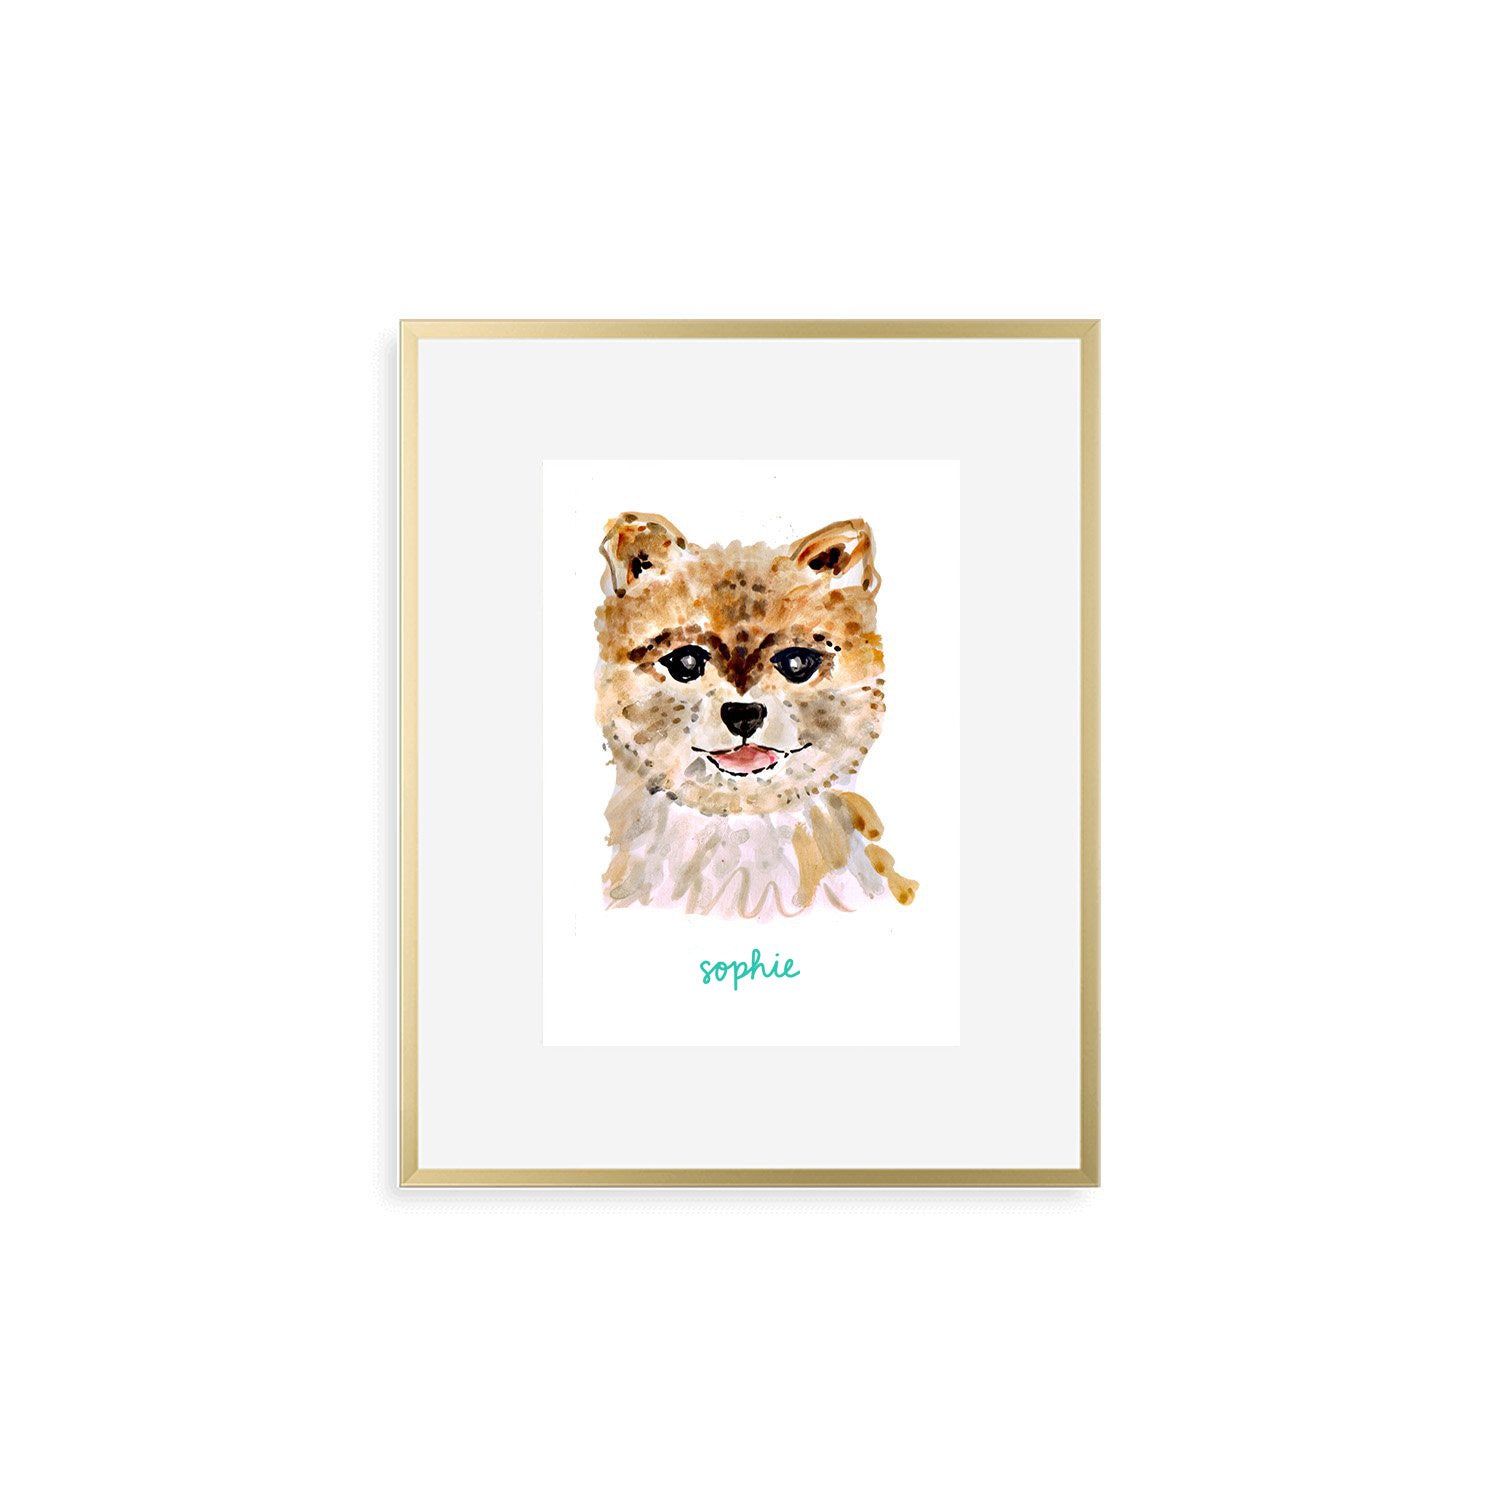 ad0069d72fe4 Personalized Dog Print. $89.99. Add a Frame